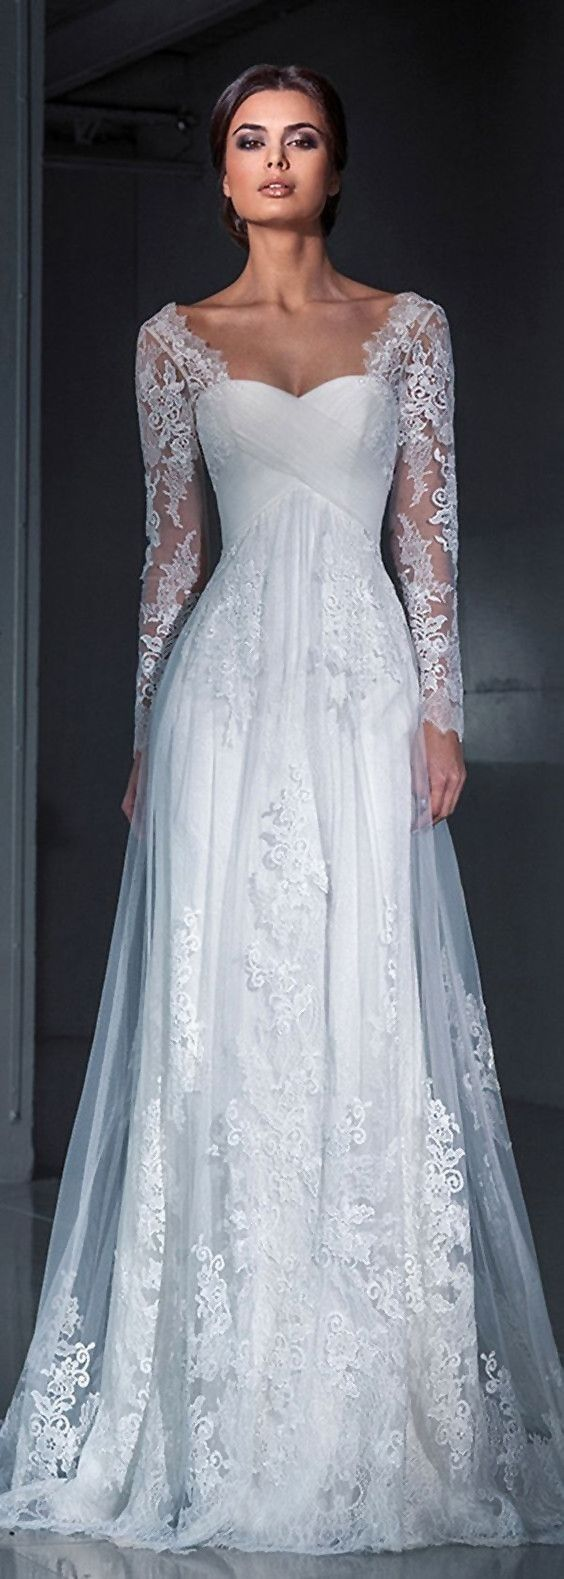 4642 best Wedding Gowns that are...what can I say but WOW! images on ...